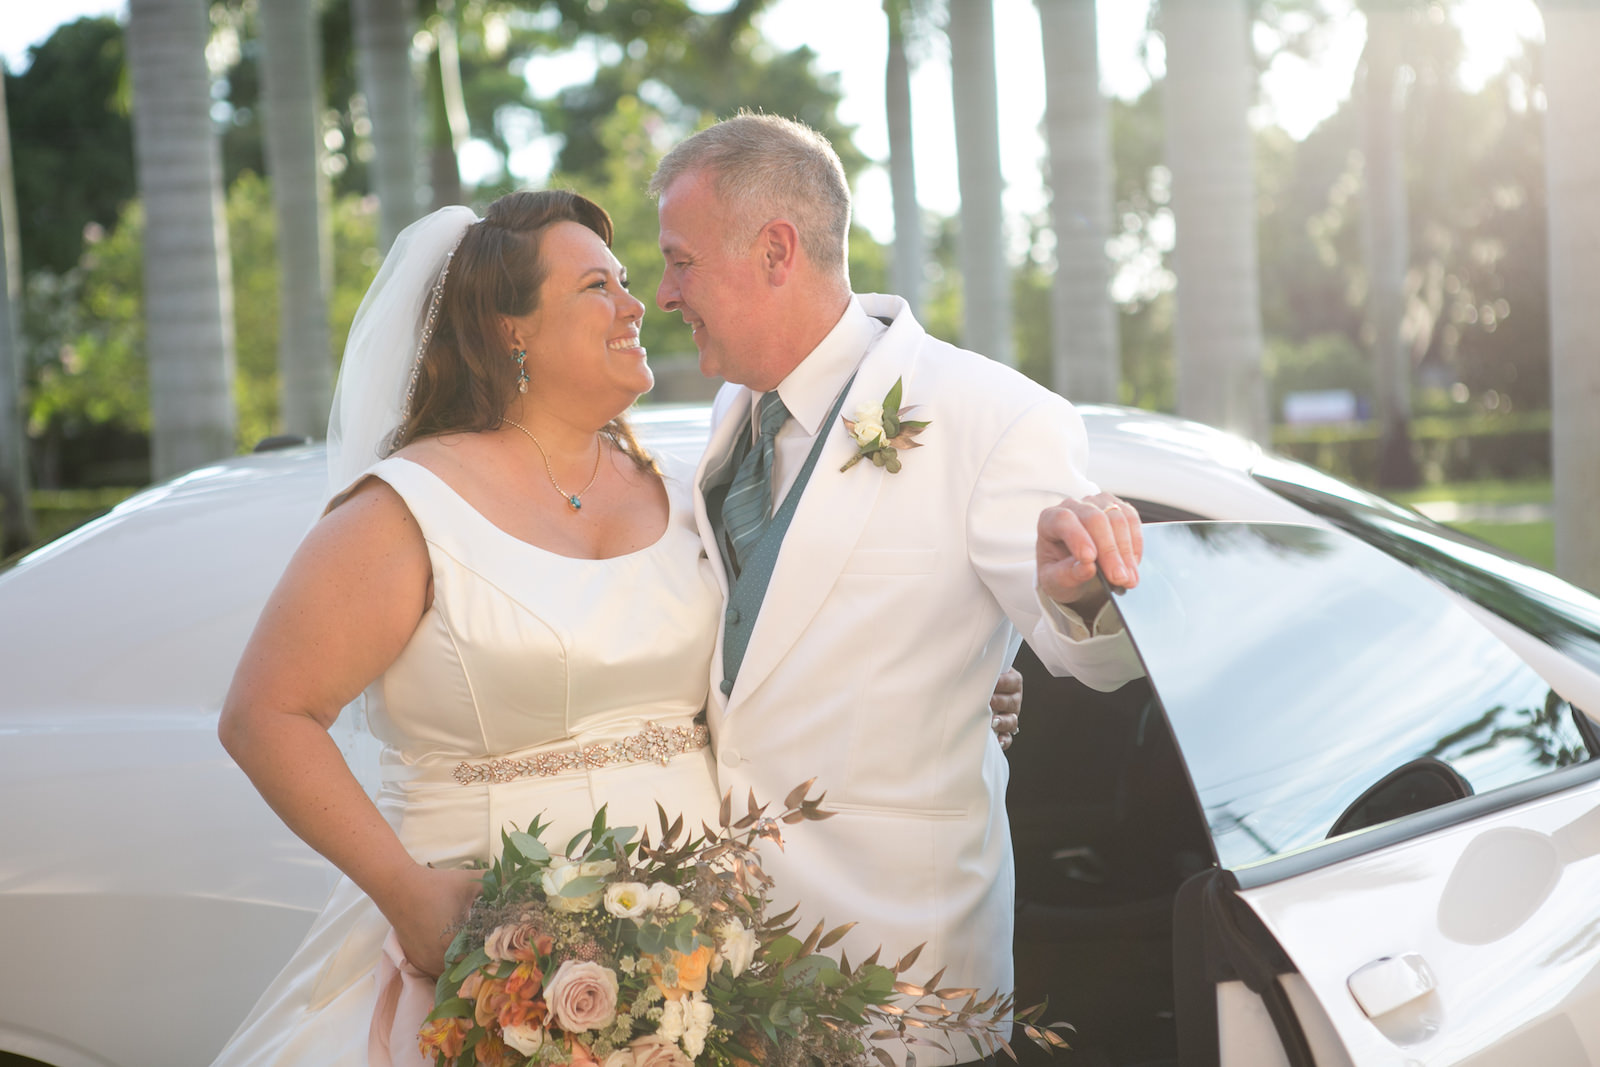 Tampa Bride in Scoop Neckline Wedding Dress with Rhinestone Belt Holding Spring Color Floral Bouquet, Groom in White Suit and Teal Vest | Wedding Photographer Carrie Wildes Photography | Wedding Dress Truly Forever Bridal | Wedding Hair and Makeup Michele Renee the Studio